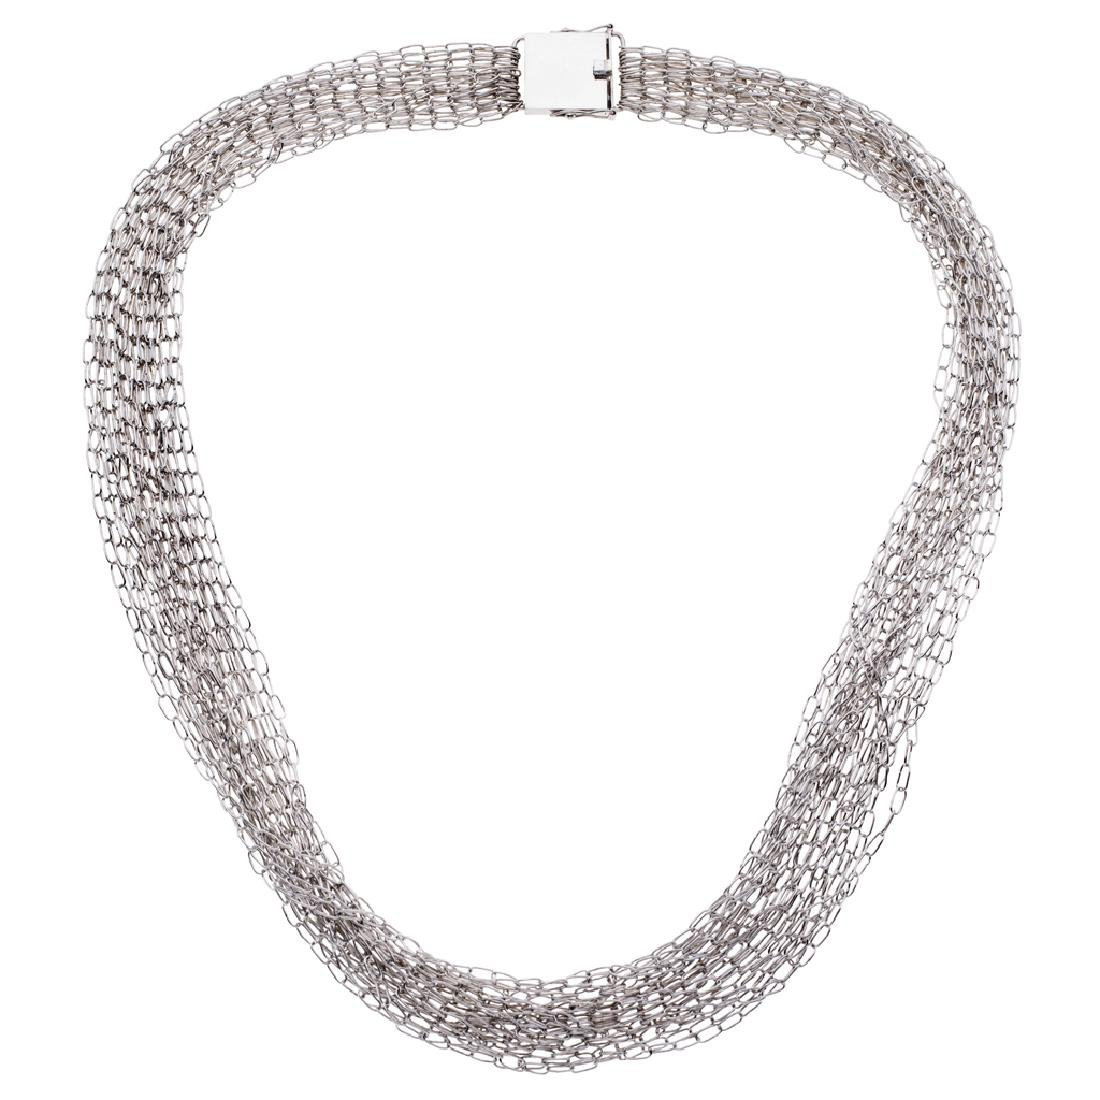 A sterling silver necklace. Weight: 125.5 g.